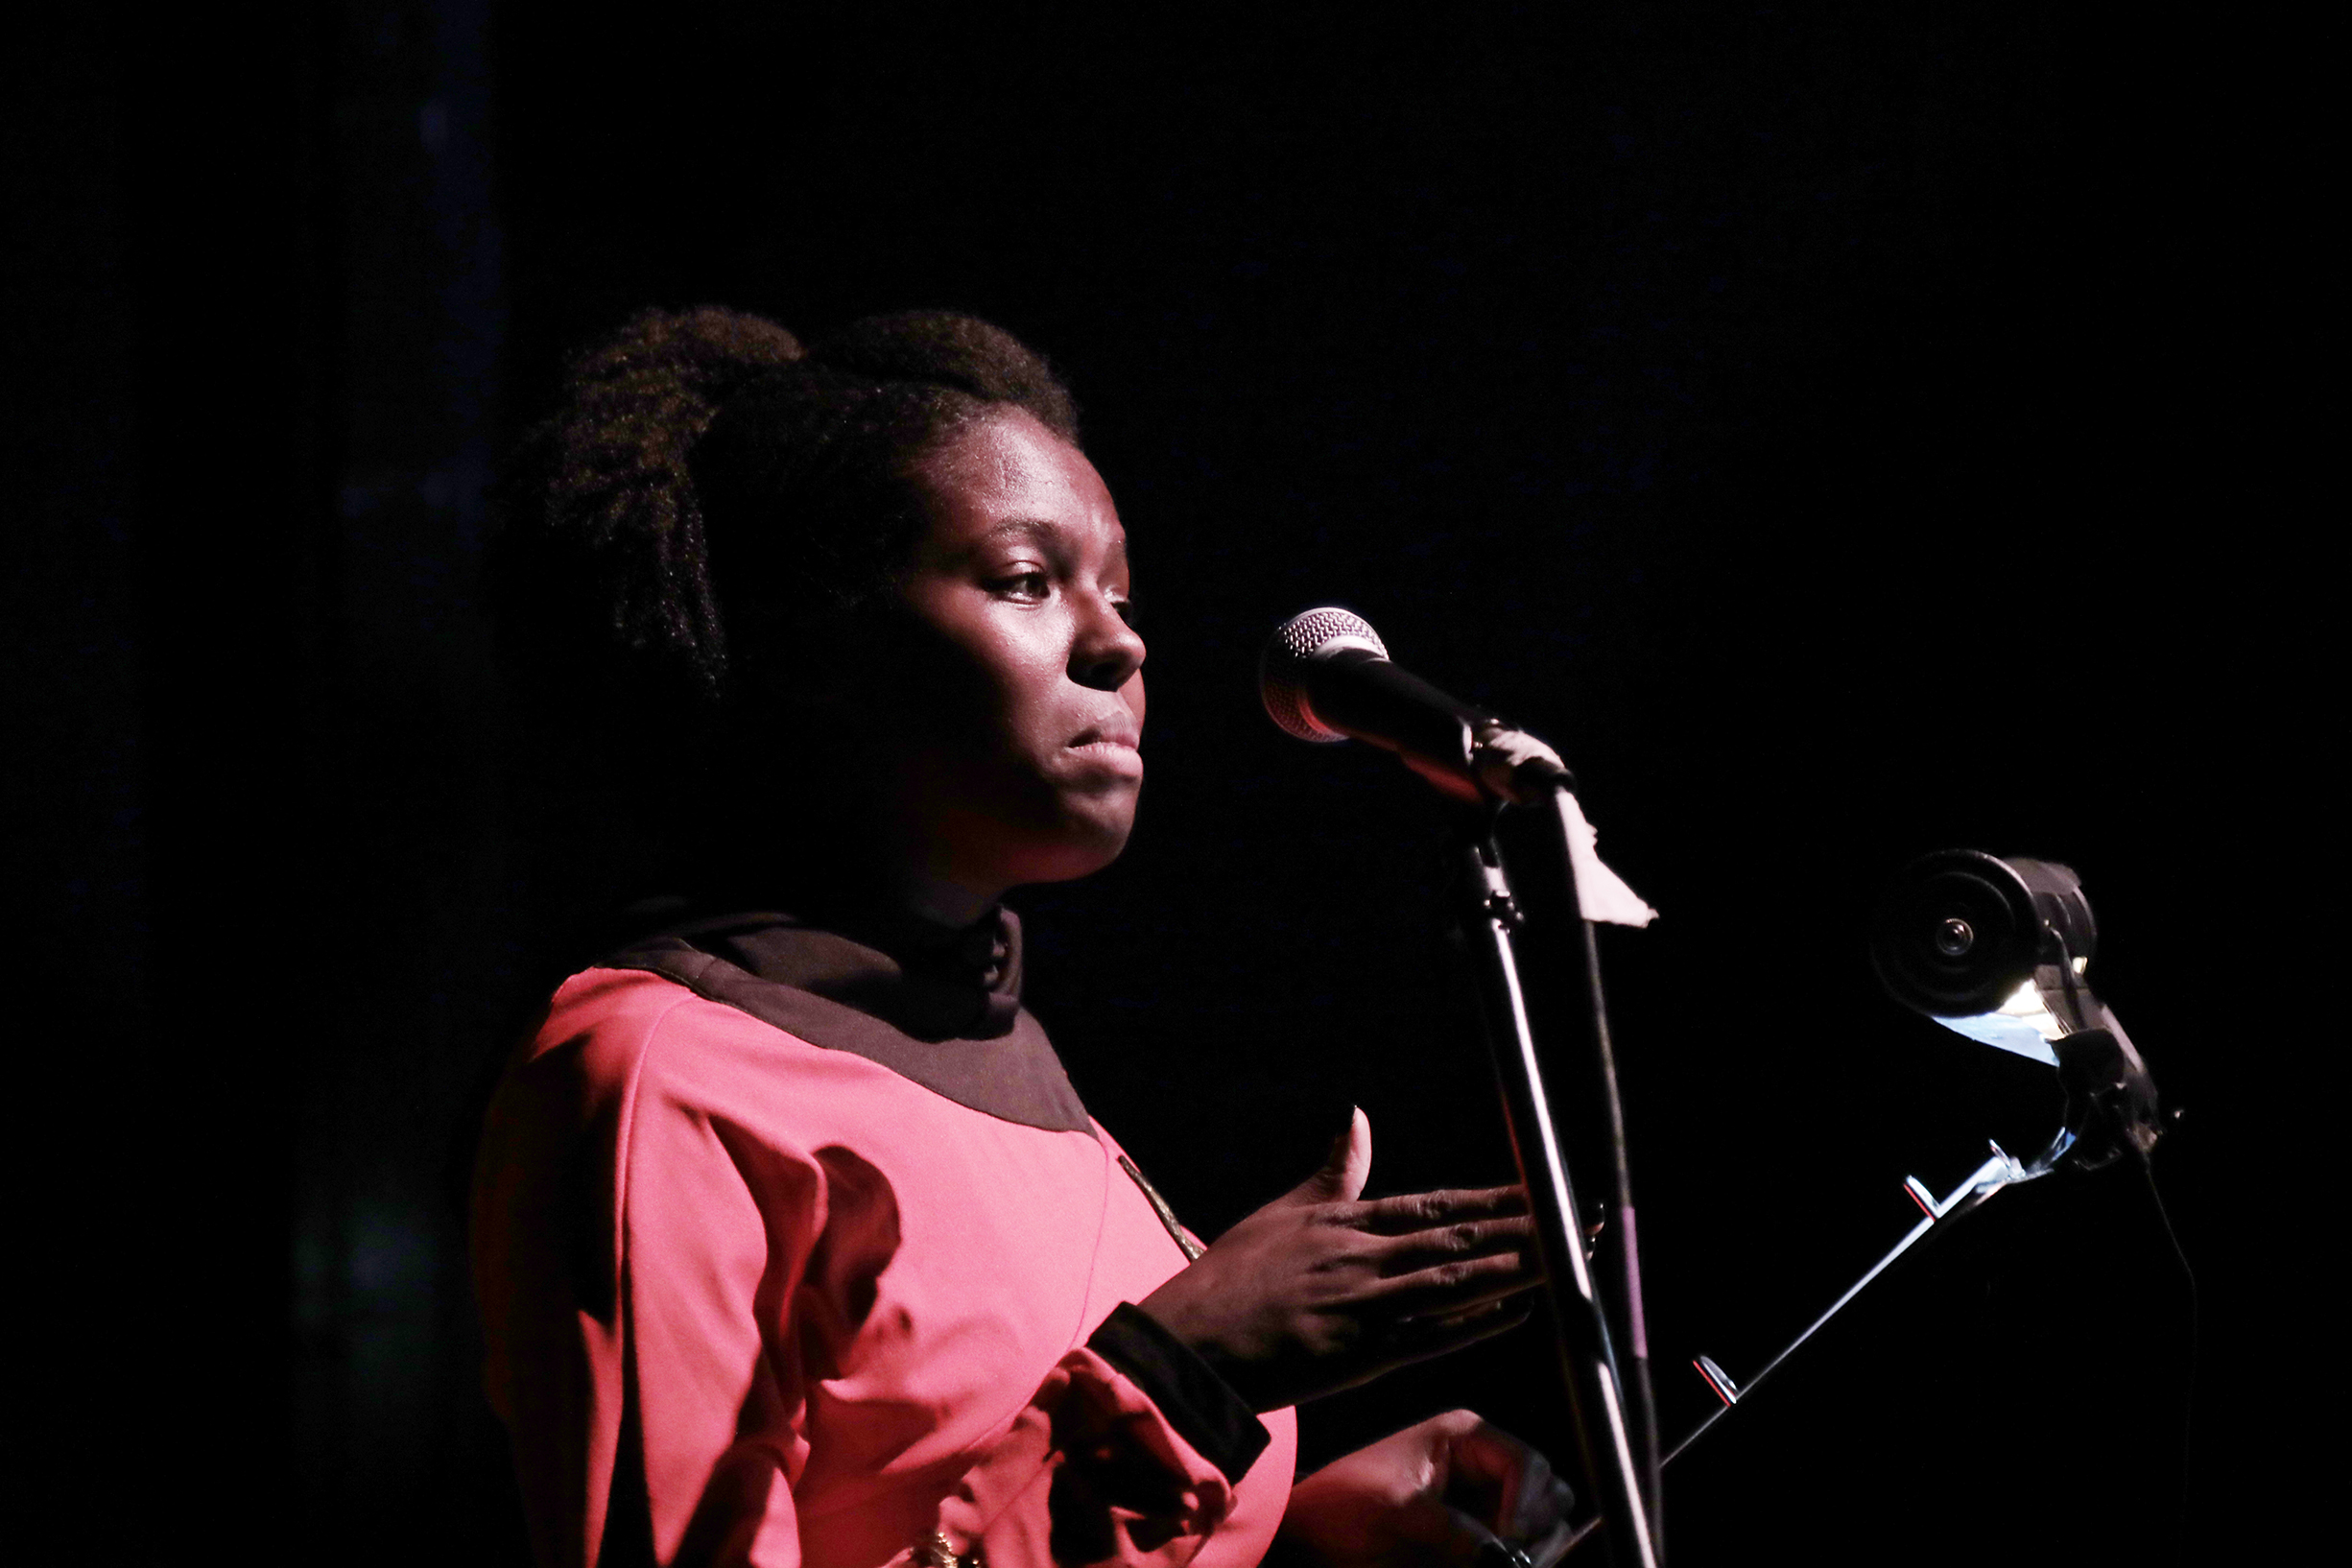 a performer standing at a microphone